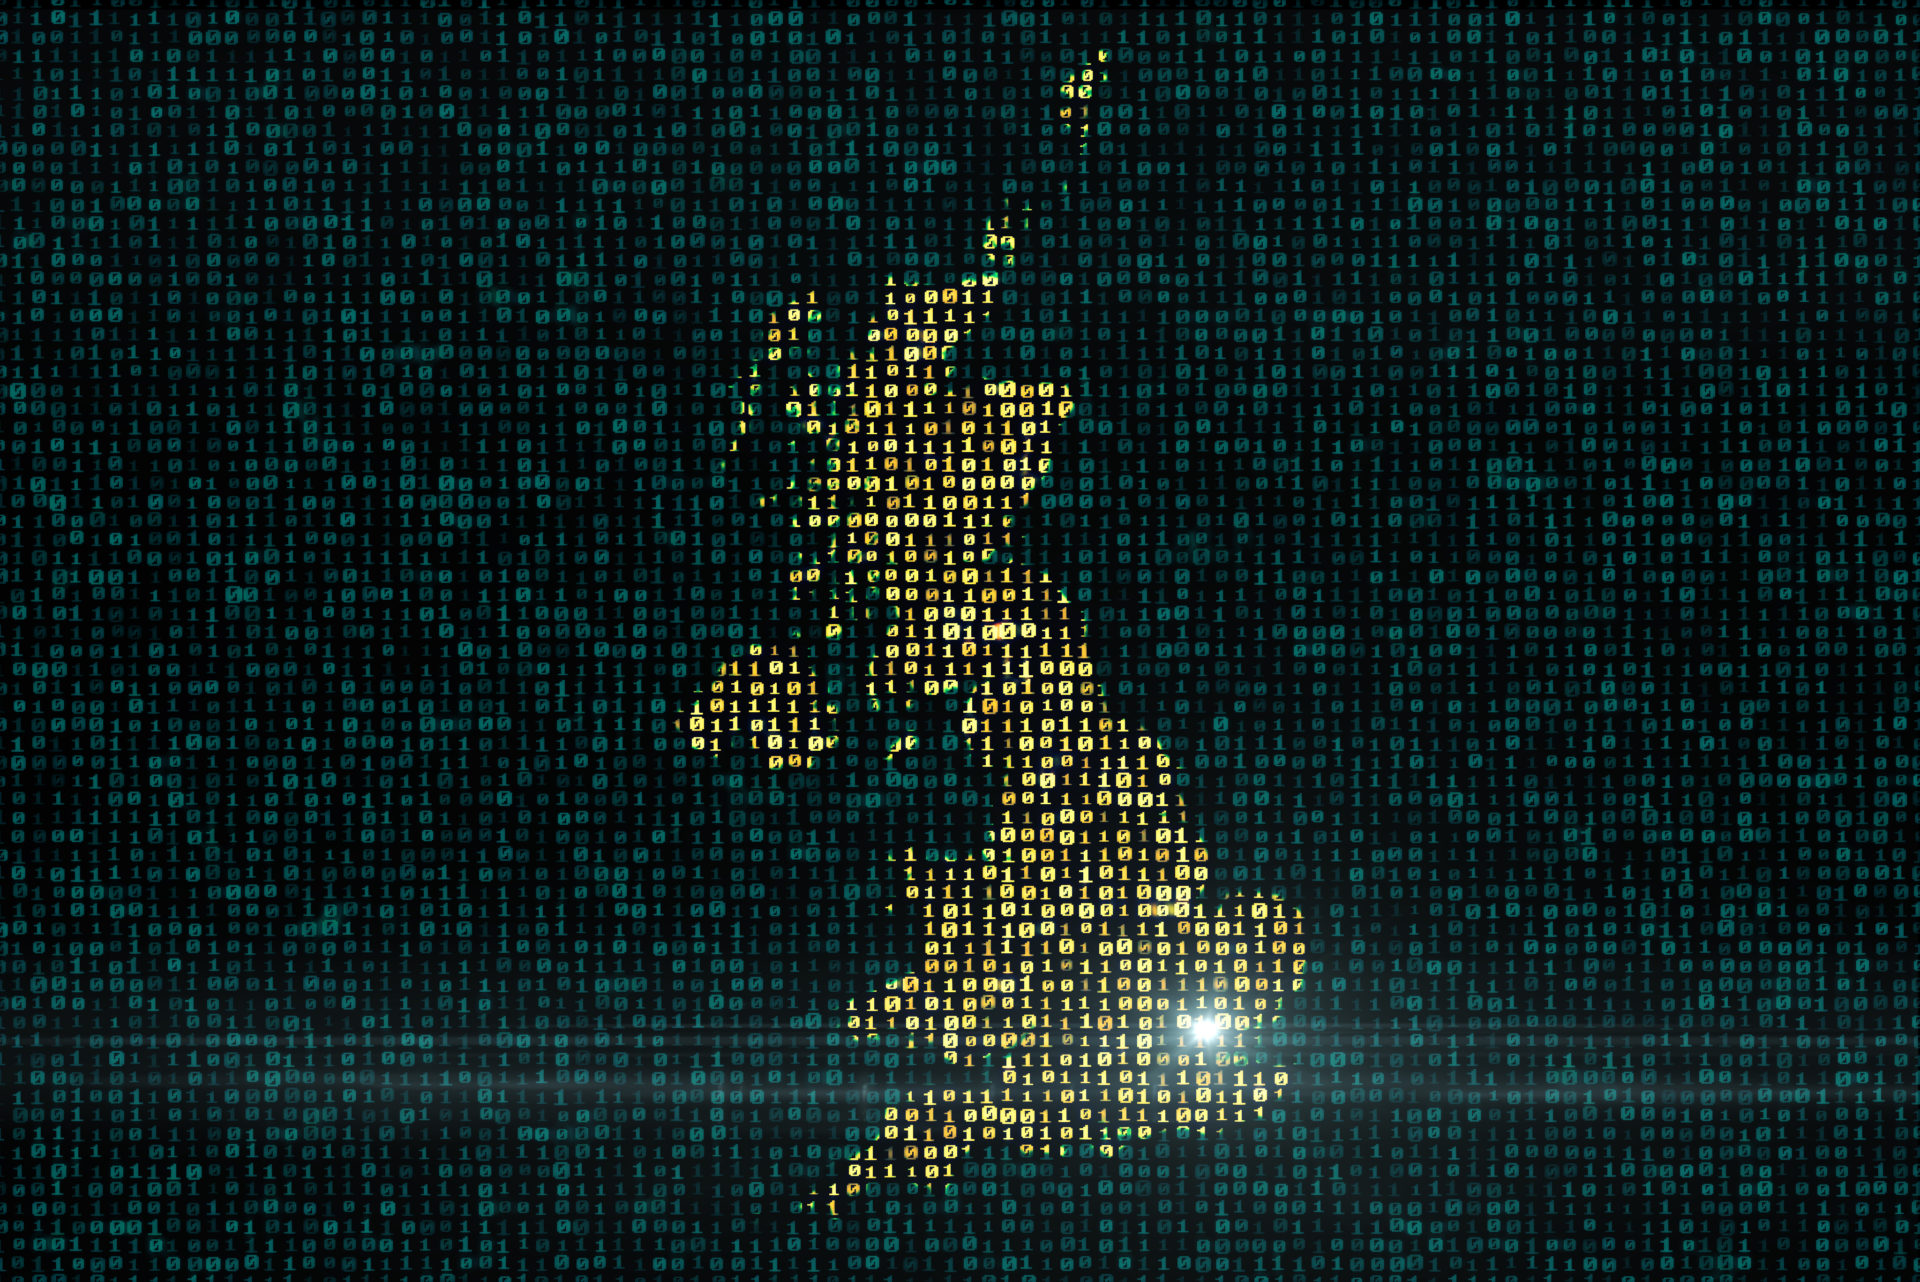 Box launches UK content storage zone in response to Brexit data fears